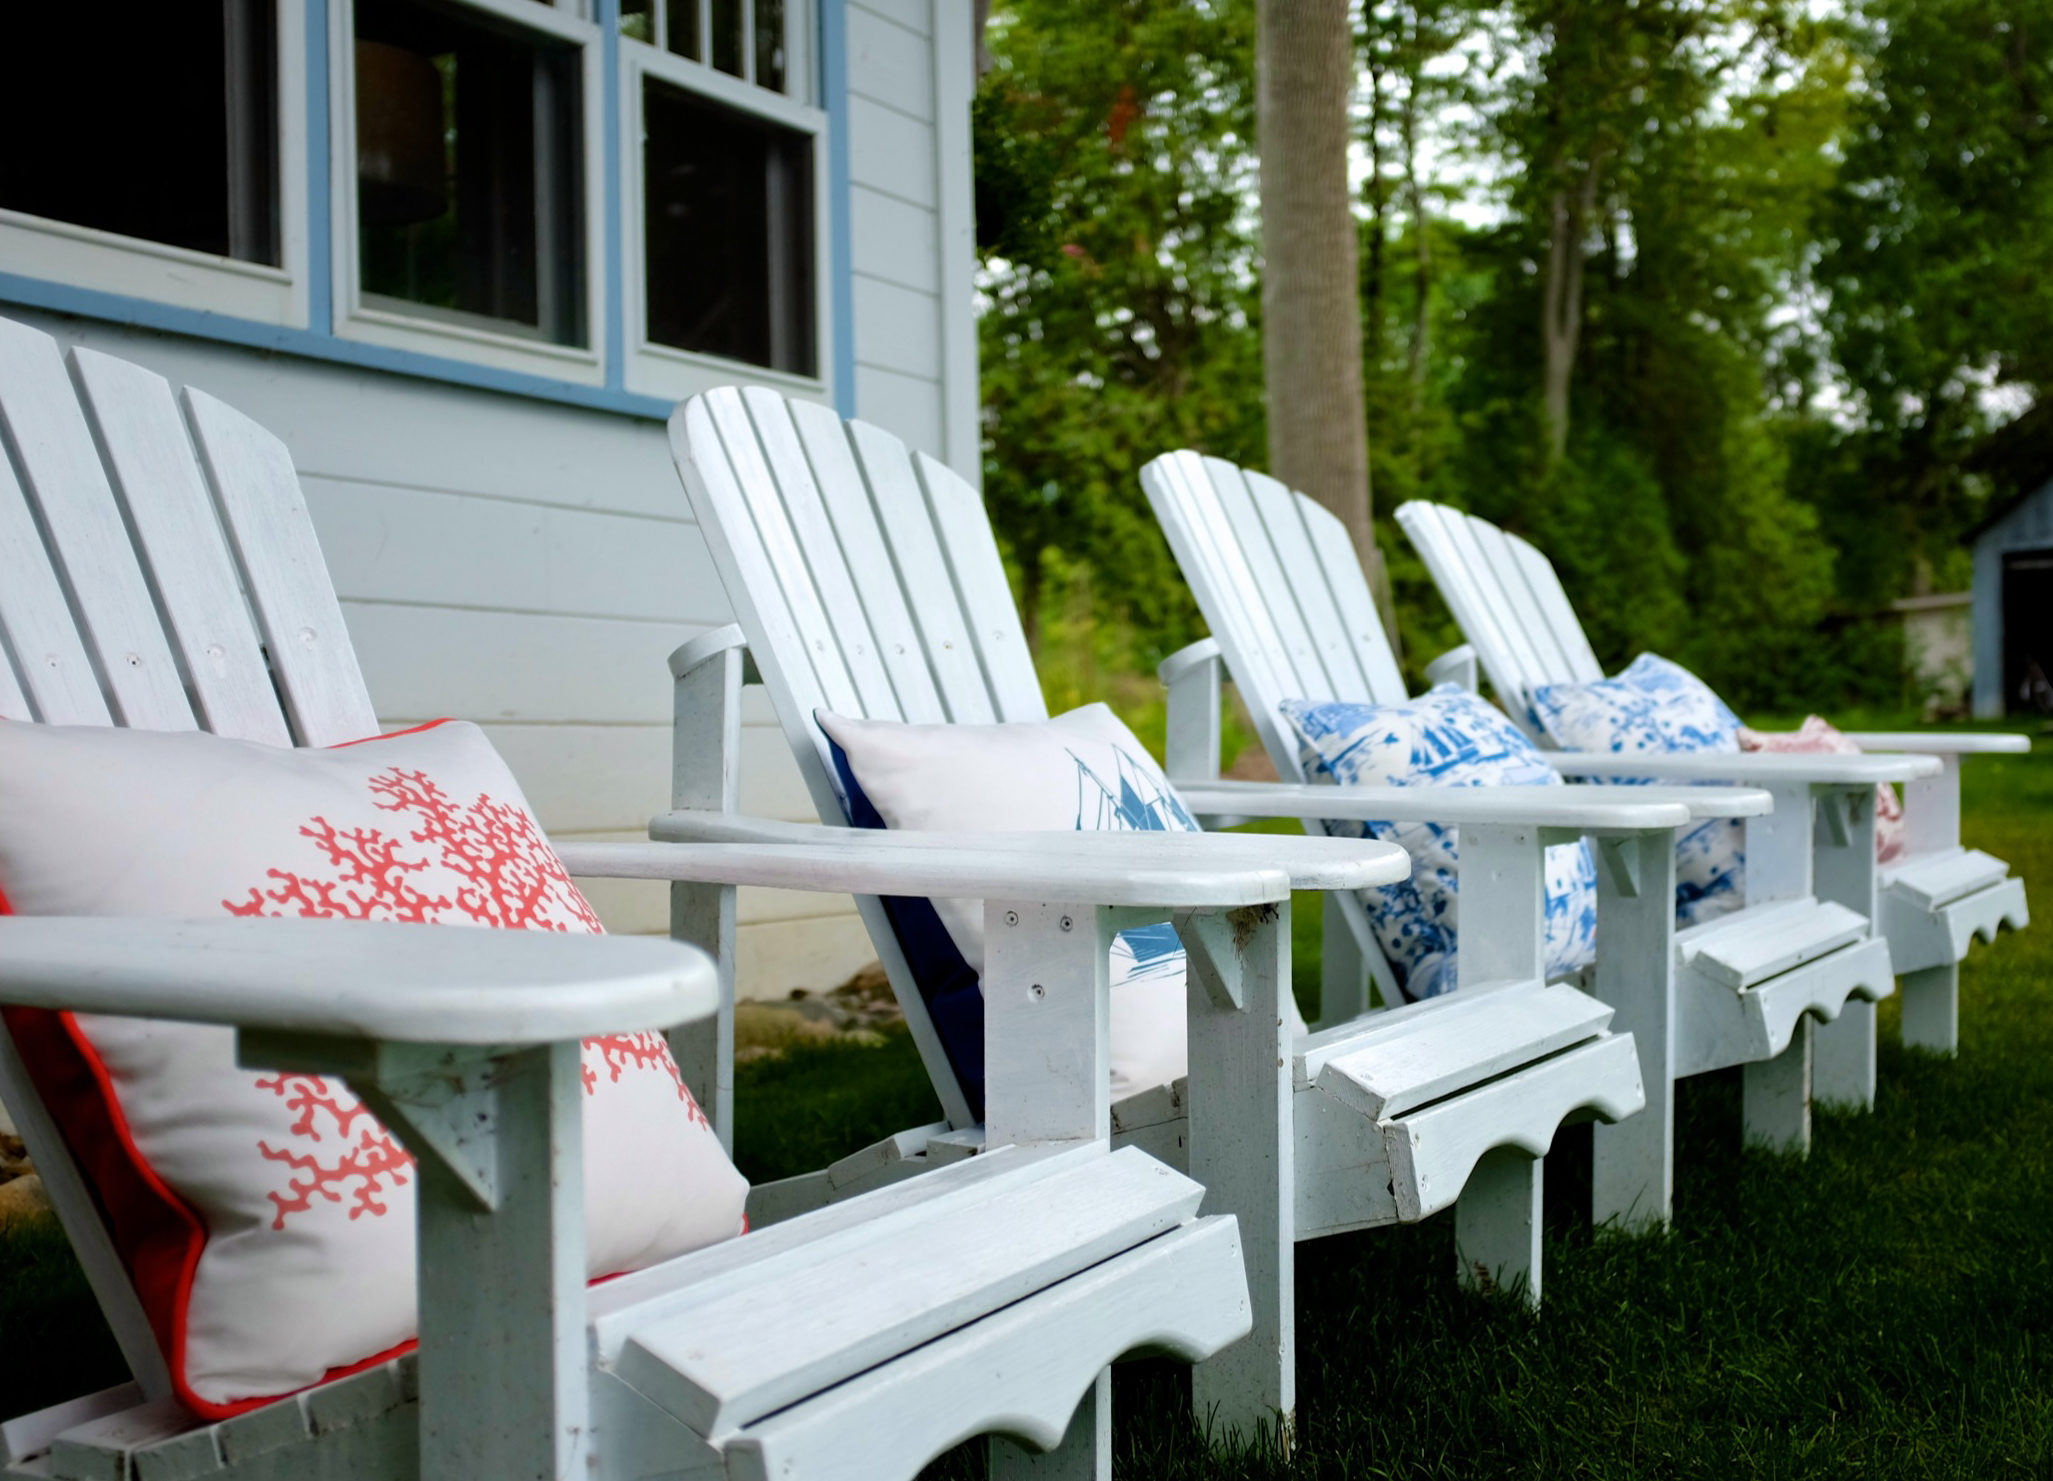 The 10 Latest Cottage Season Must-Haves